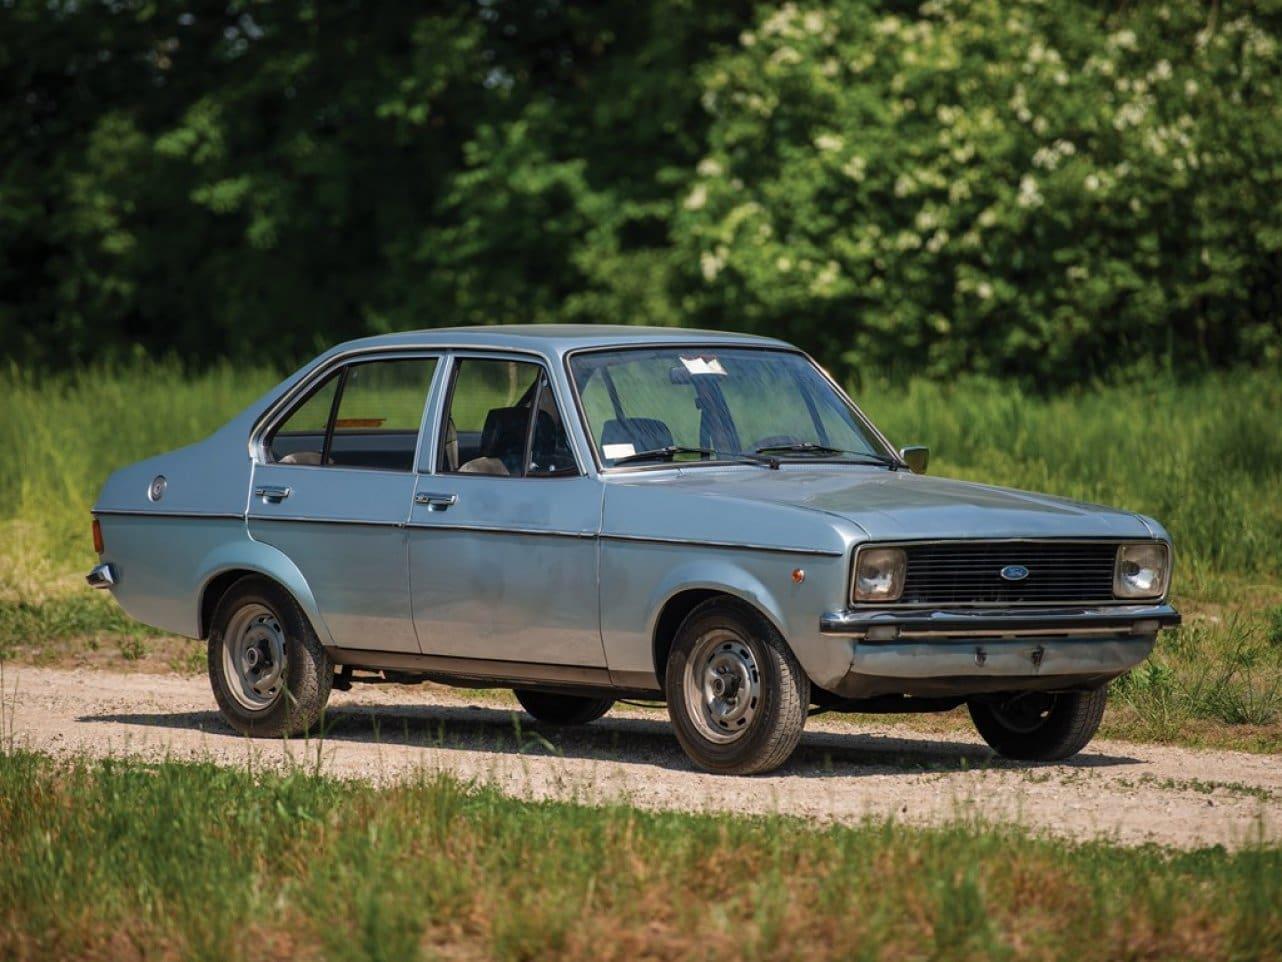 Old Ford Escort of Pope John Paul II to be Auctioned Off